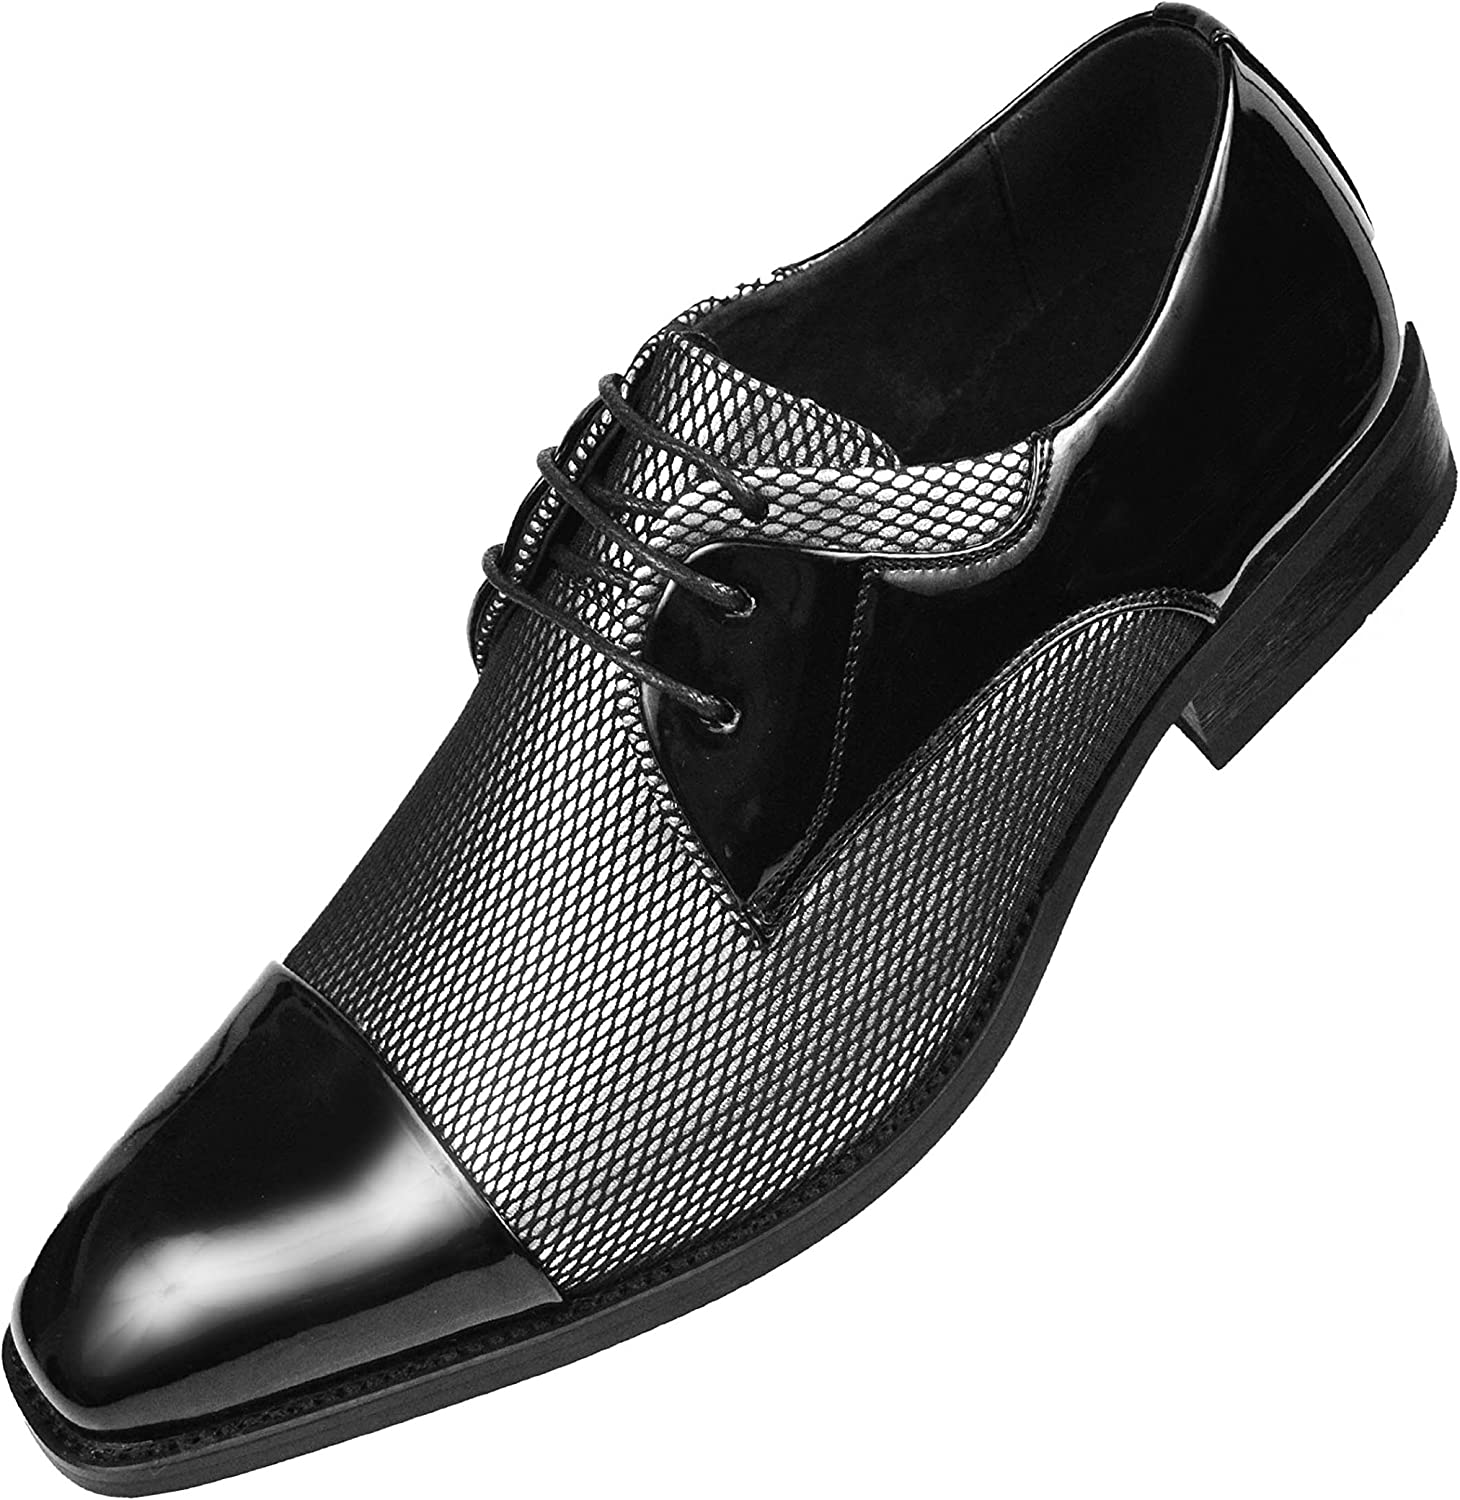 Amali Draper - Mens Shoes, Mens Oxford Shoes - Tuxedo Shoes - Two-Tone, Cap Toe, Lace up - Mens Dress Shoes - Trimmed with Black Satin Runs Small GO 1/2 Size UP